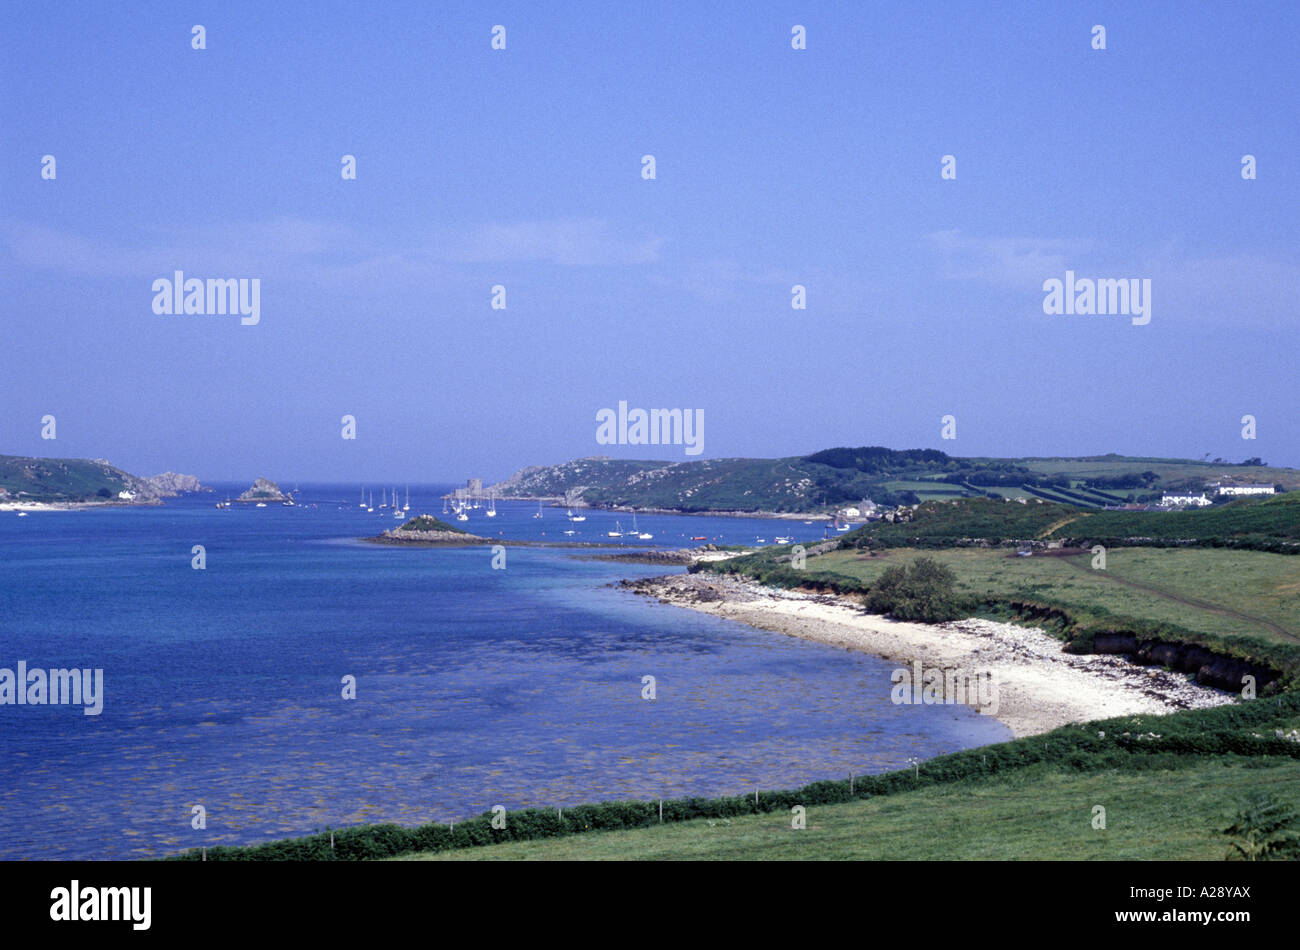 Tree Blue Sky Cornwall Uk Stockfotos & Tree Blue Sky Cornwall Uk ...